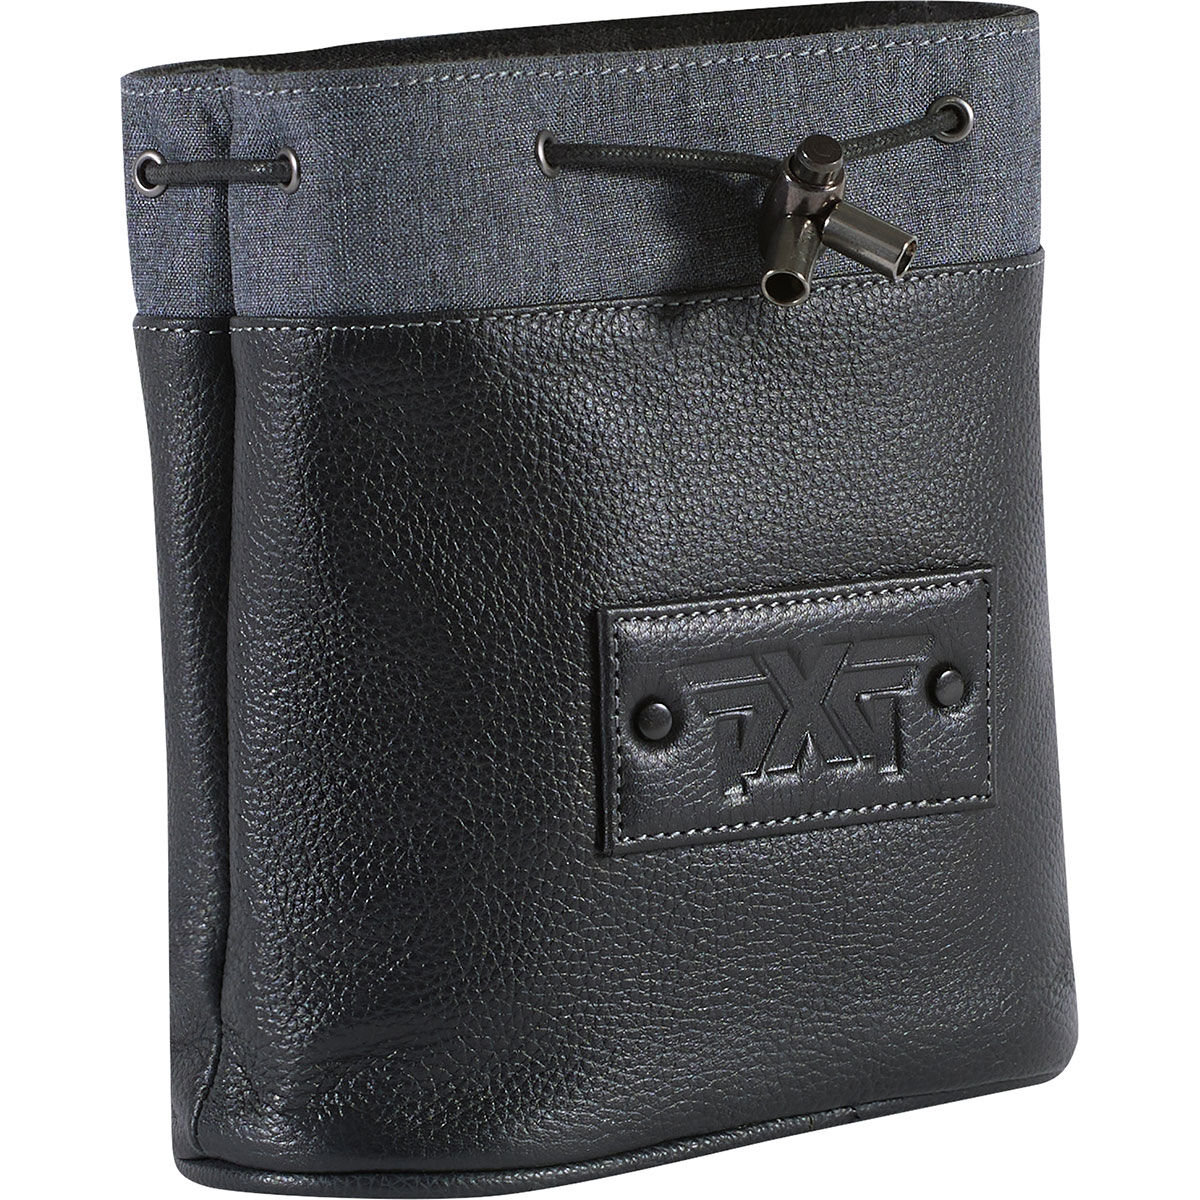 """Parsons Xtreme Golf Black PXG Valuable Golf Pouch, Size: 7x6.5x3"""" 